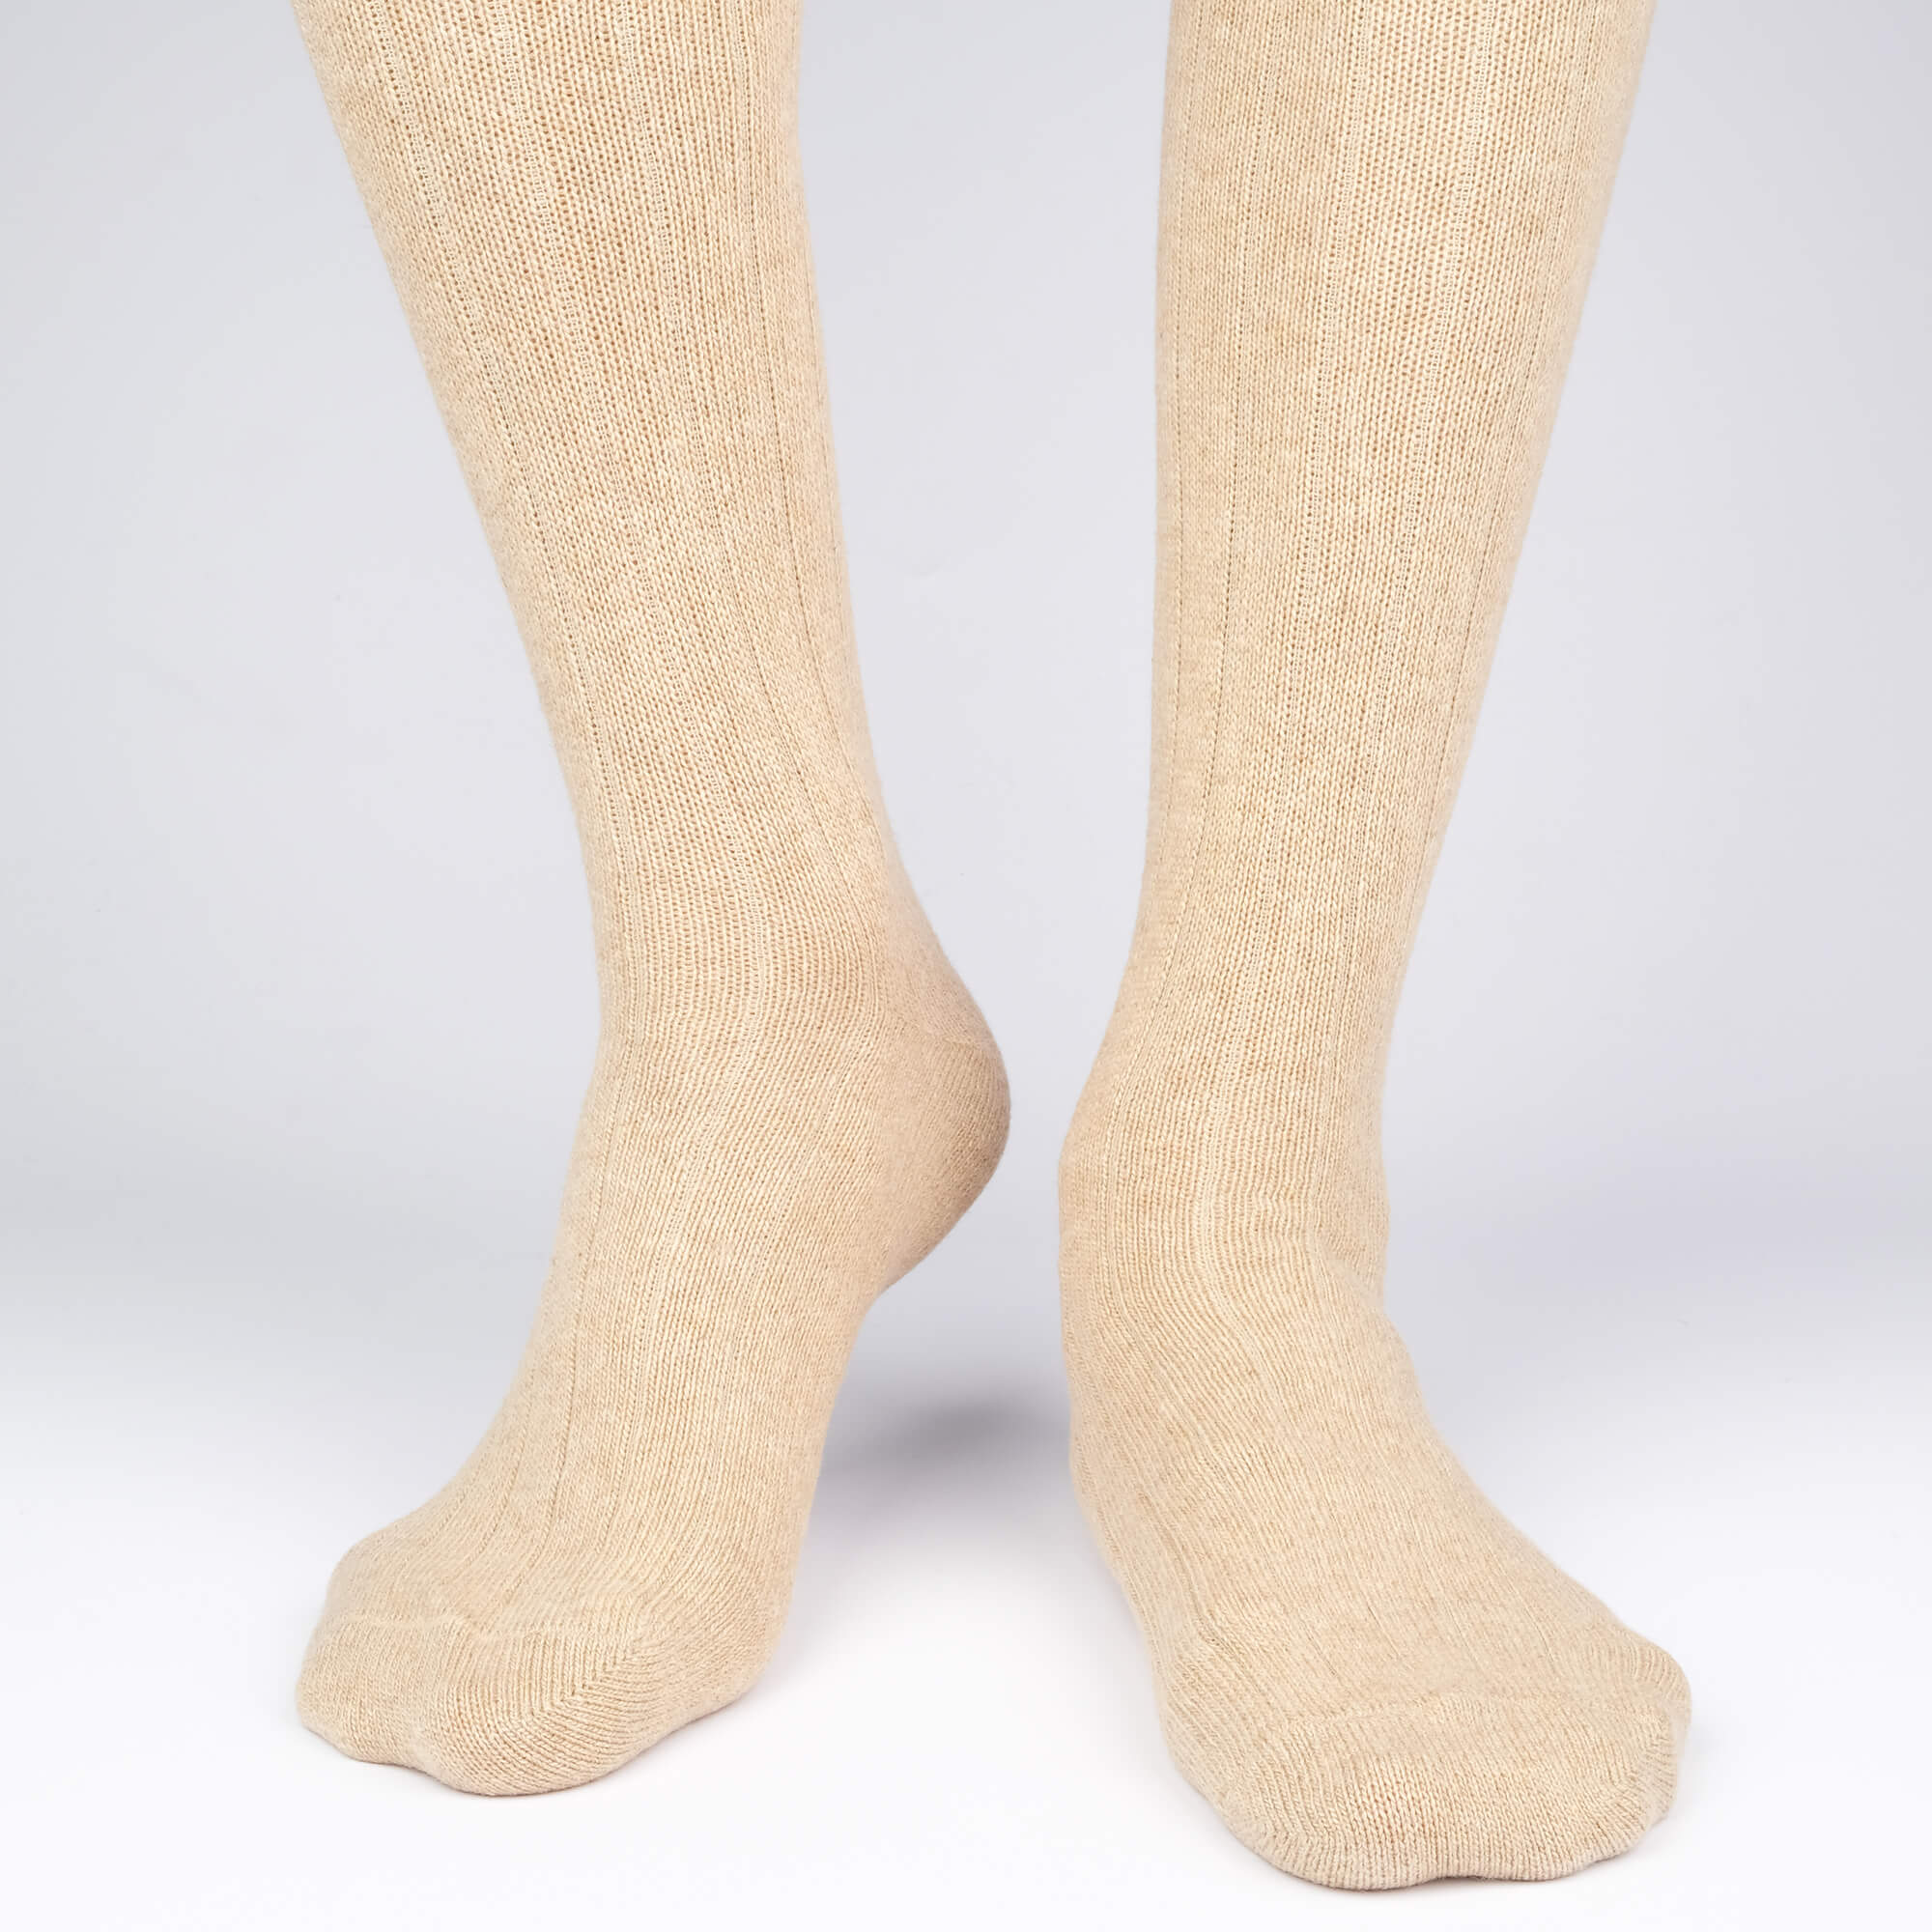 Cashmere Knee High Rib - Brown - Mens Socks | Etiquette Clothiers Global Official